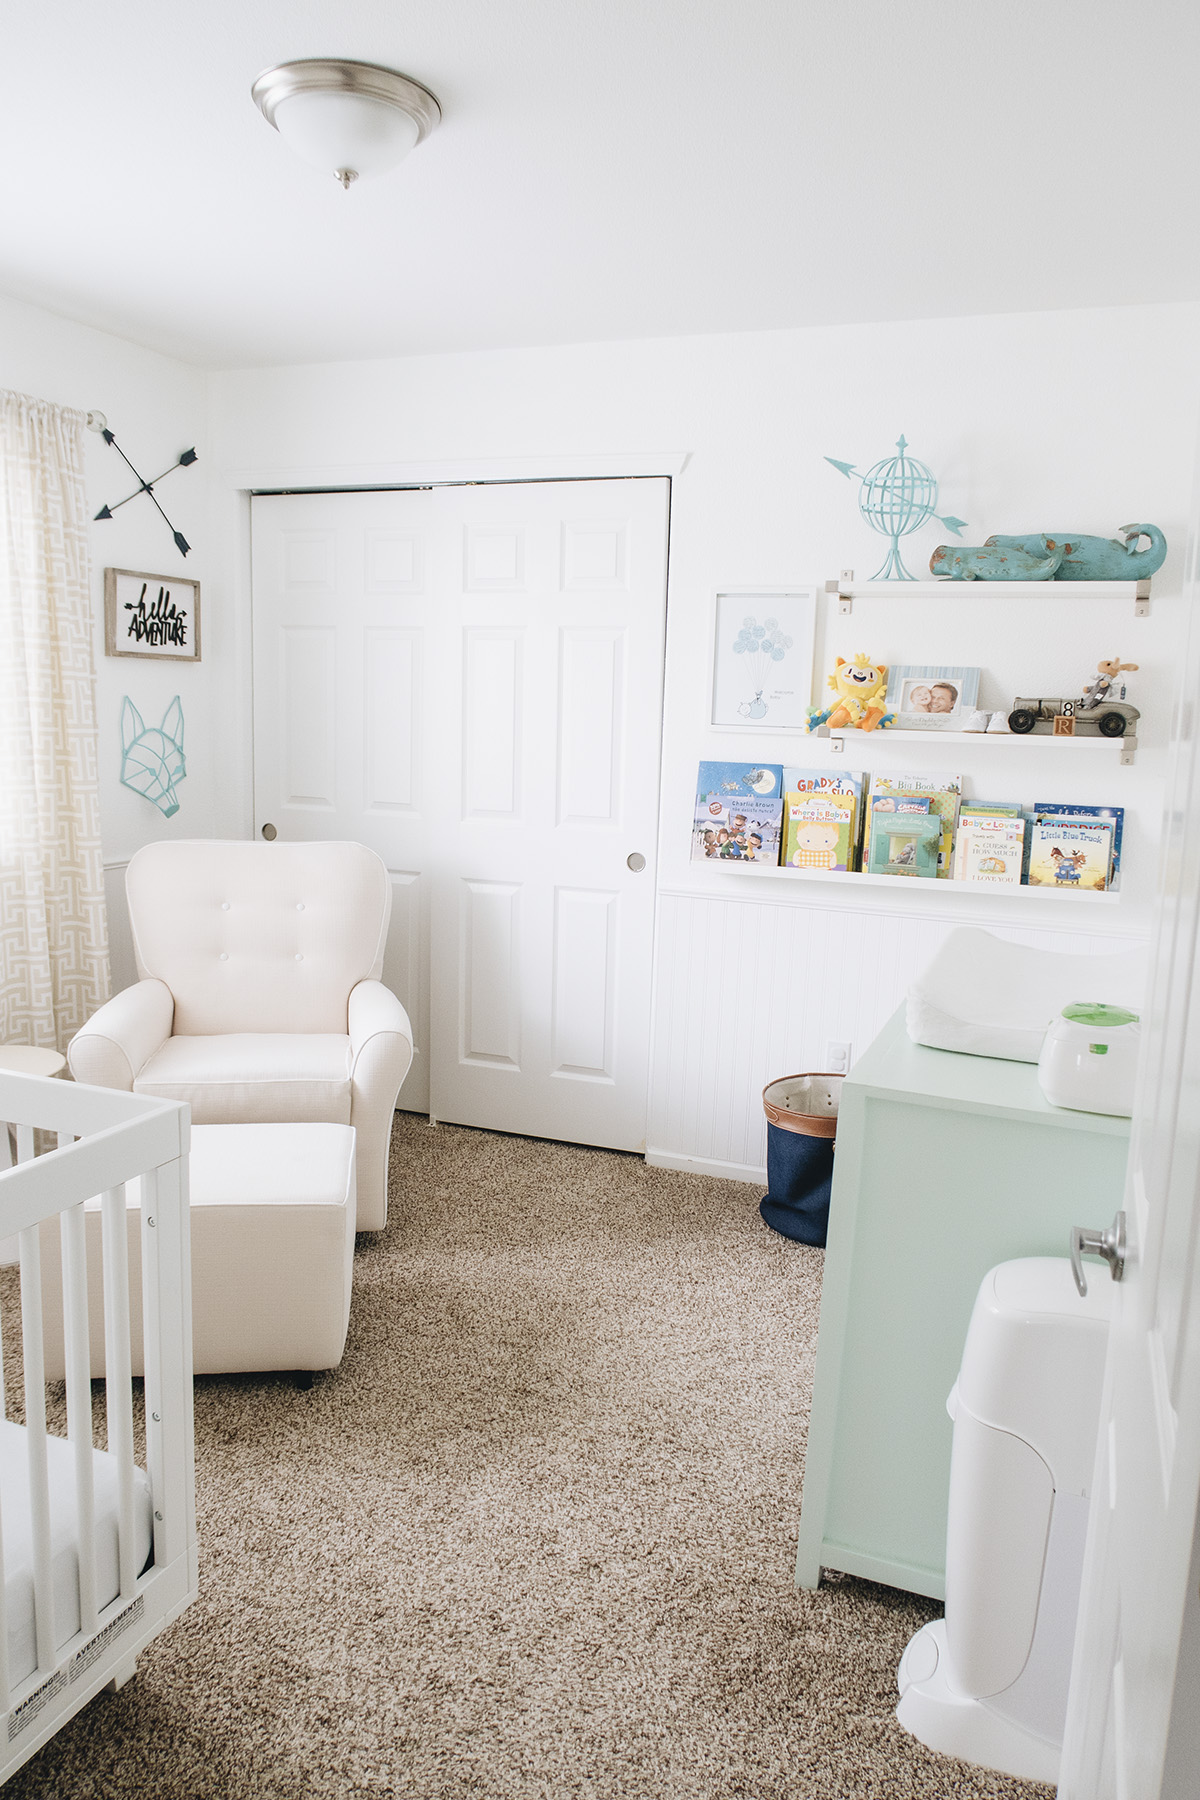 Nursery with white walls and pastel colors